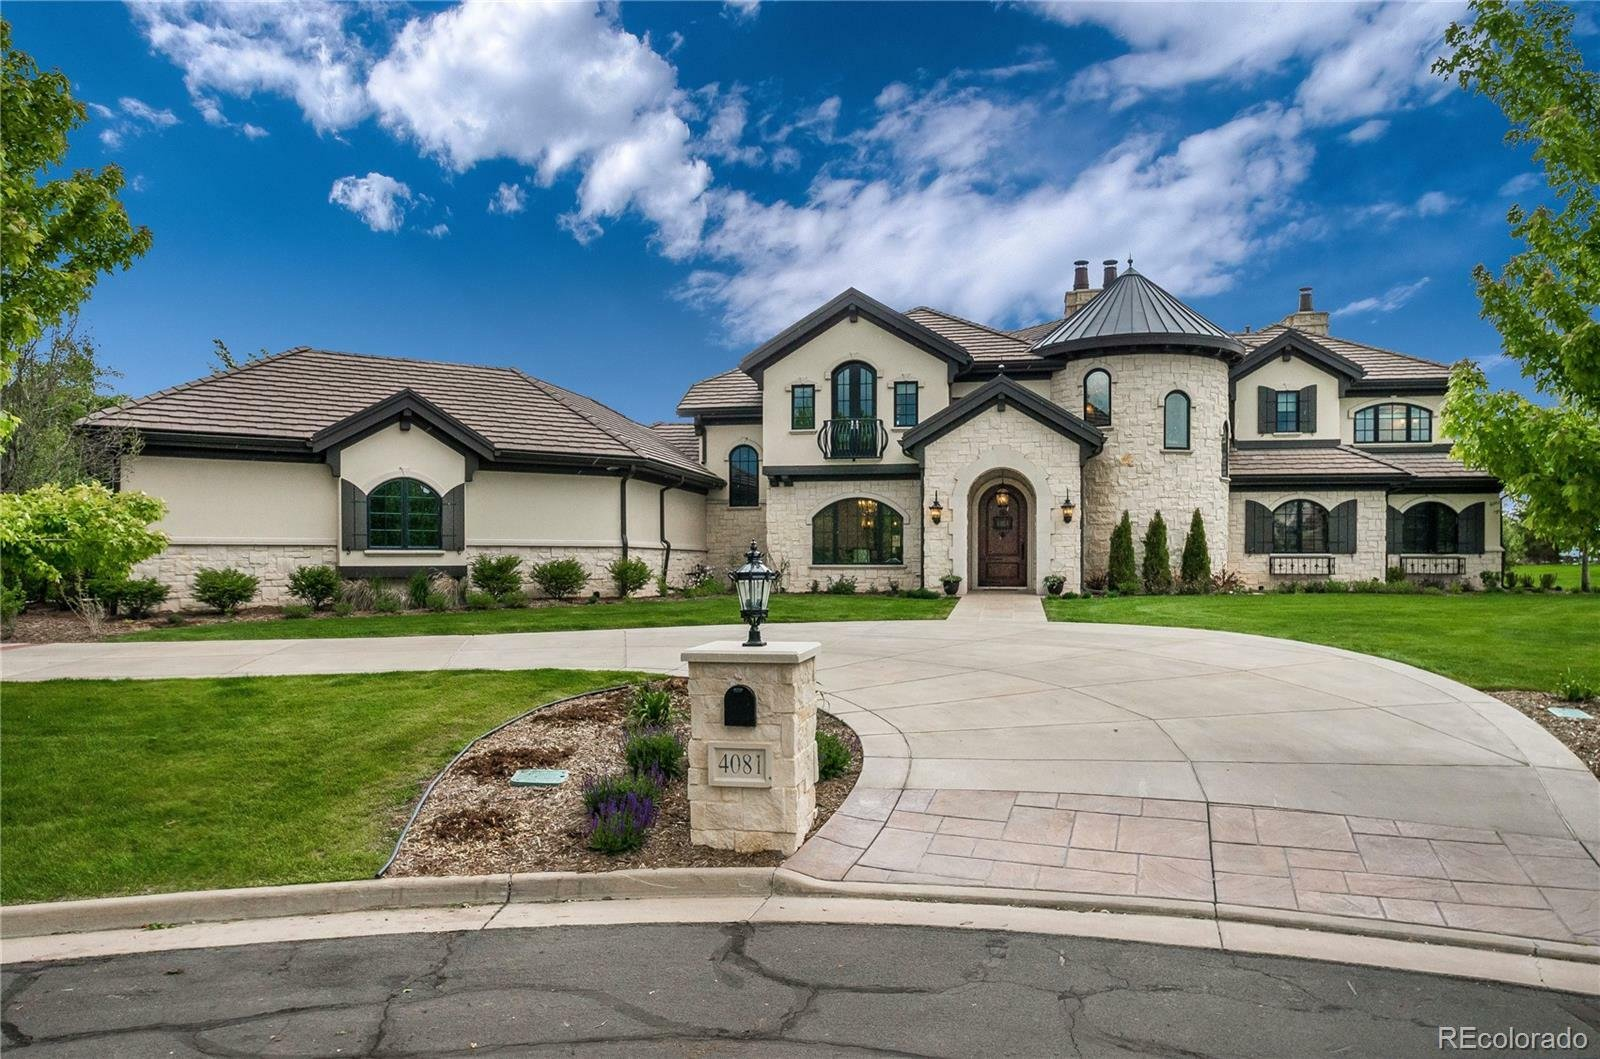 House in Greenwood Village, Colorado, United States 1